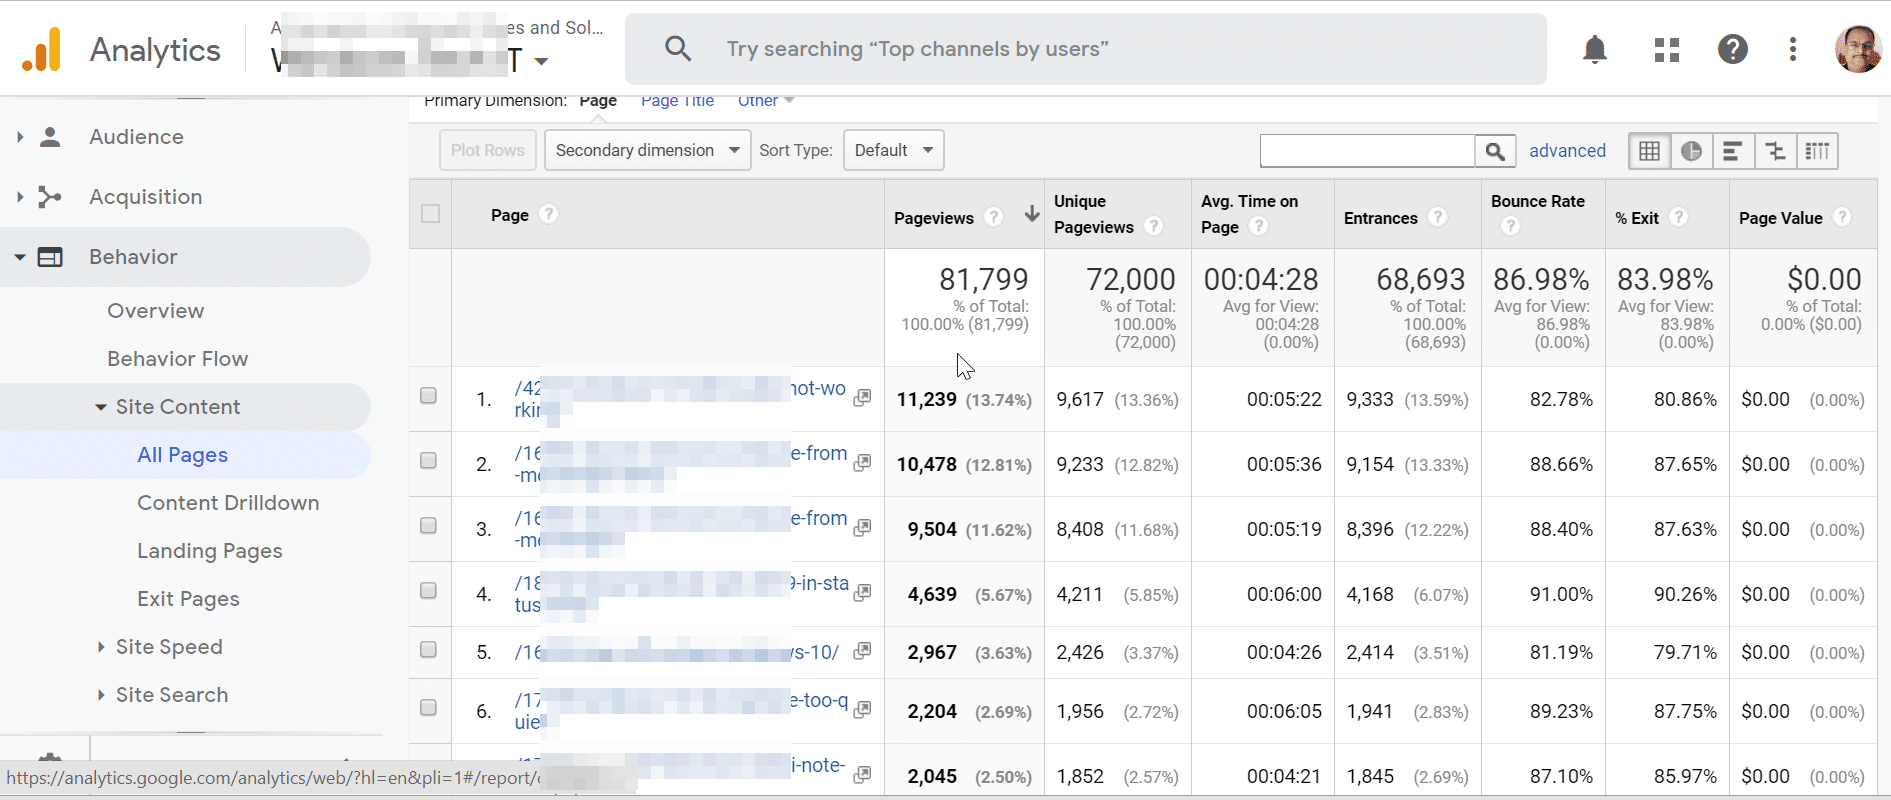 How to View Page View Metrics in Google Analytics